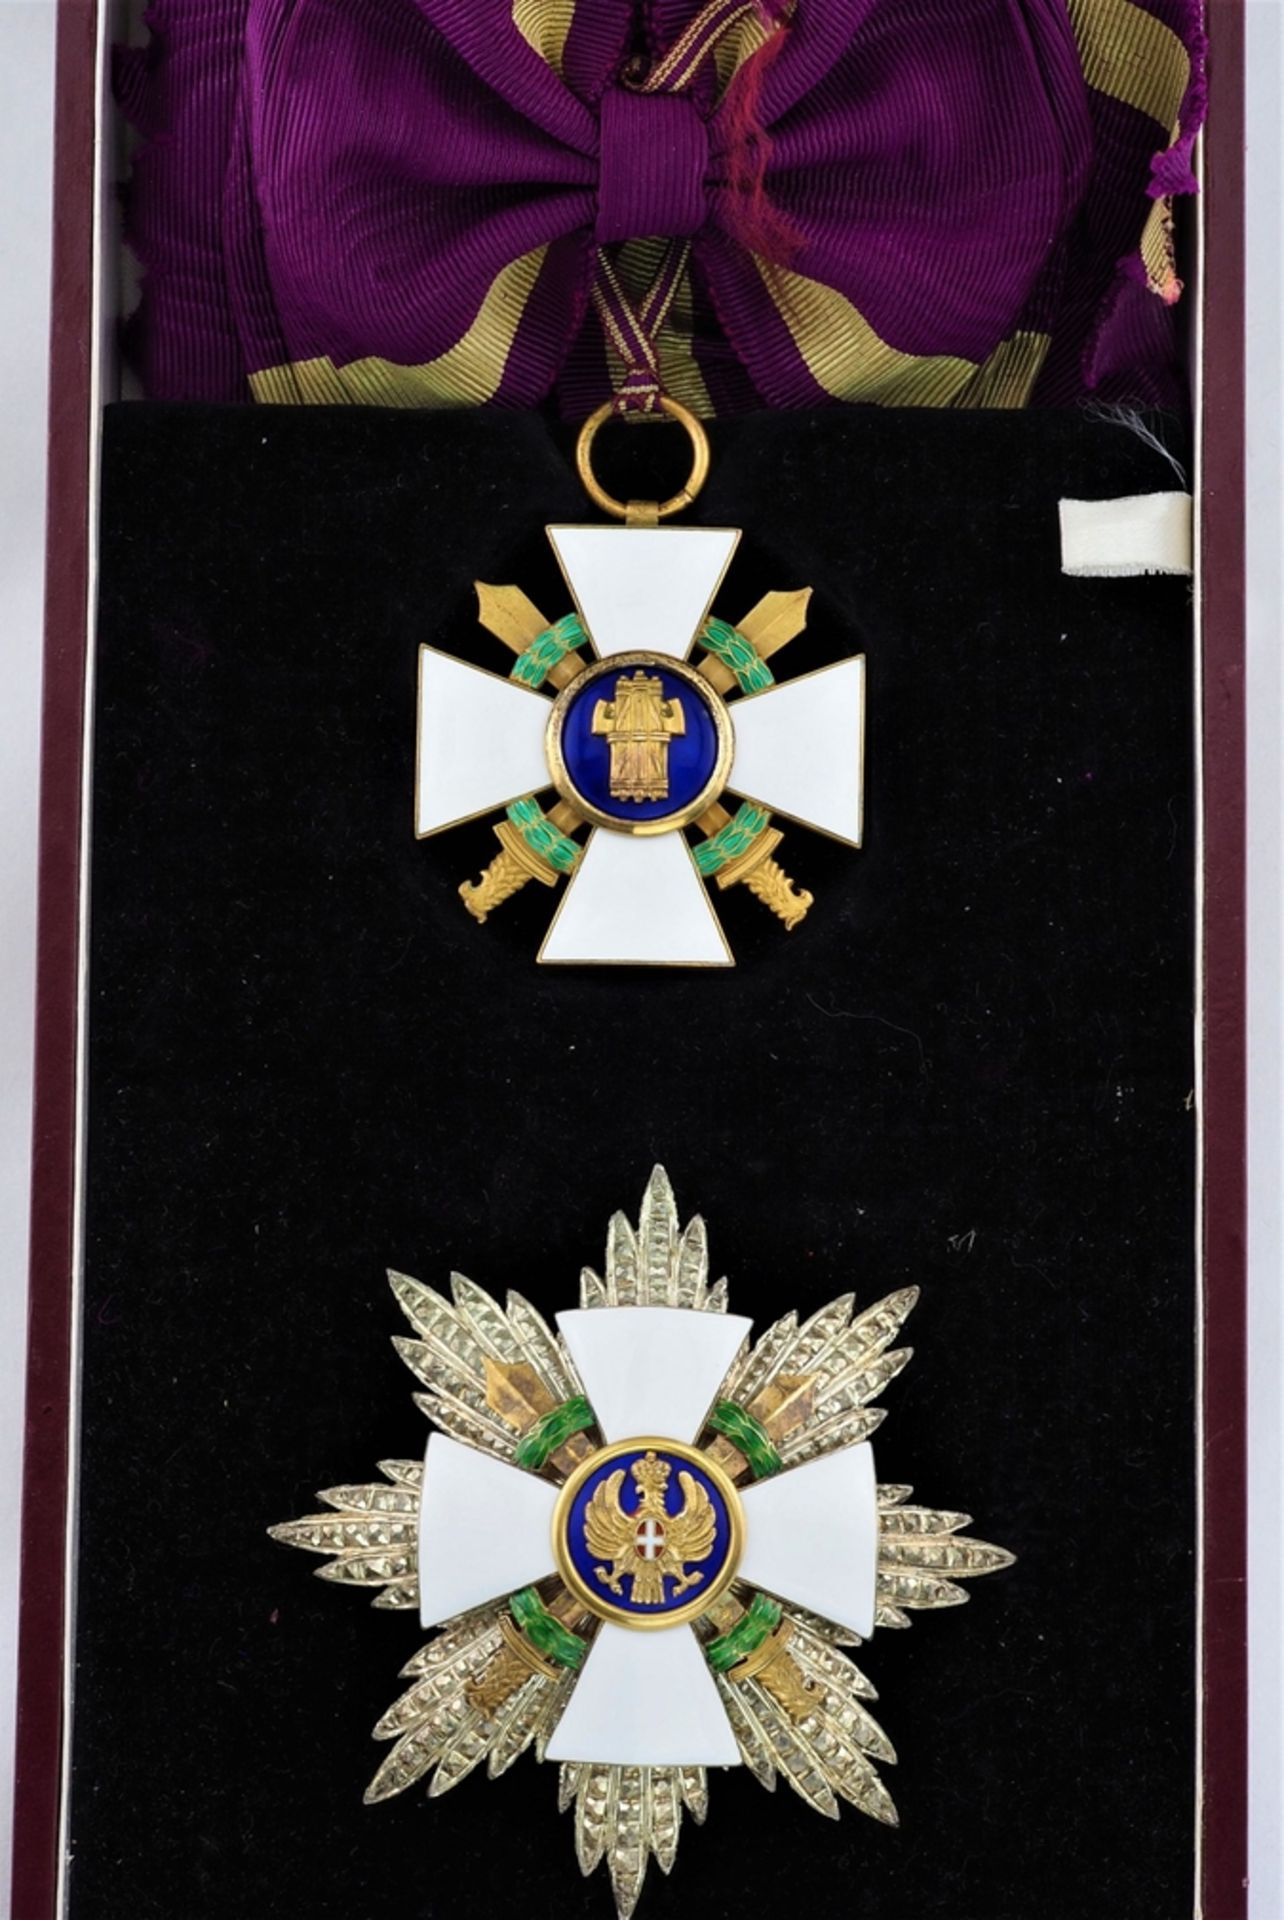 World War 2, Third Reich, Medals & Decorations Legacy: Commanding General of the Luftwaffe (Wehrmac - Image 7 of 27